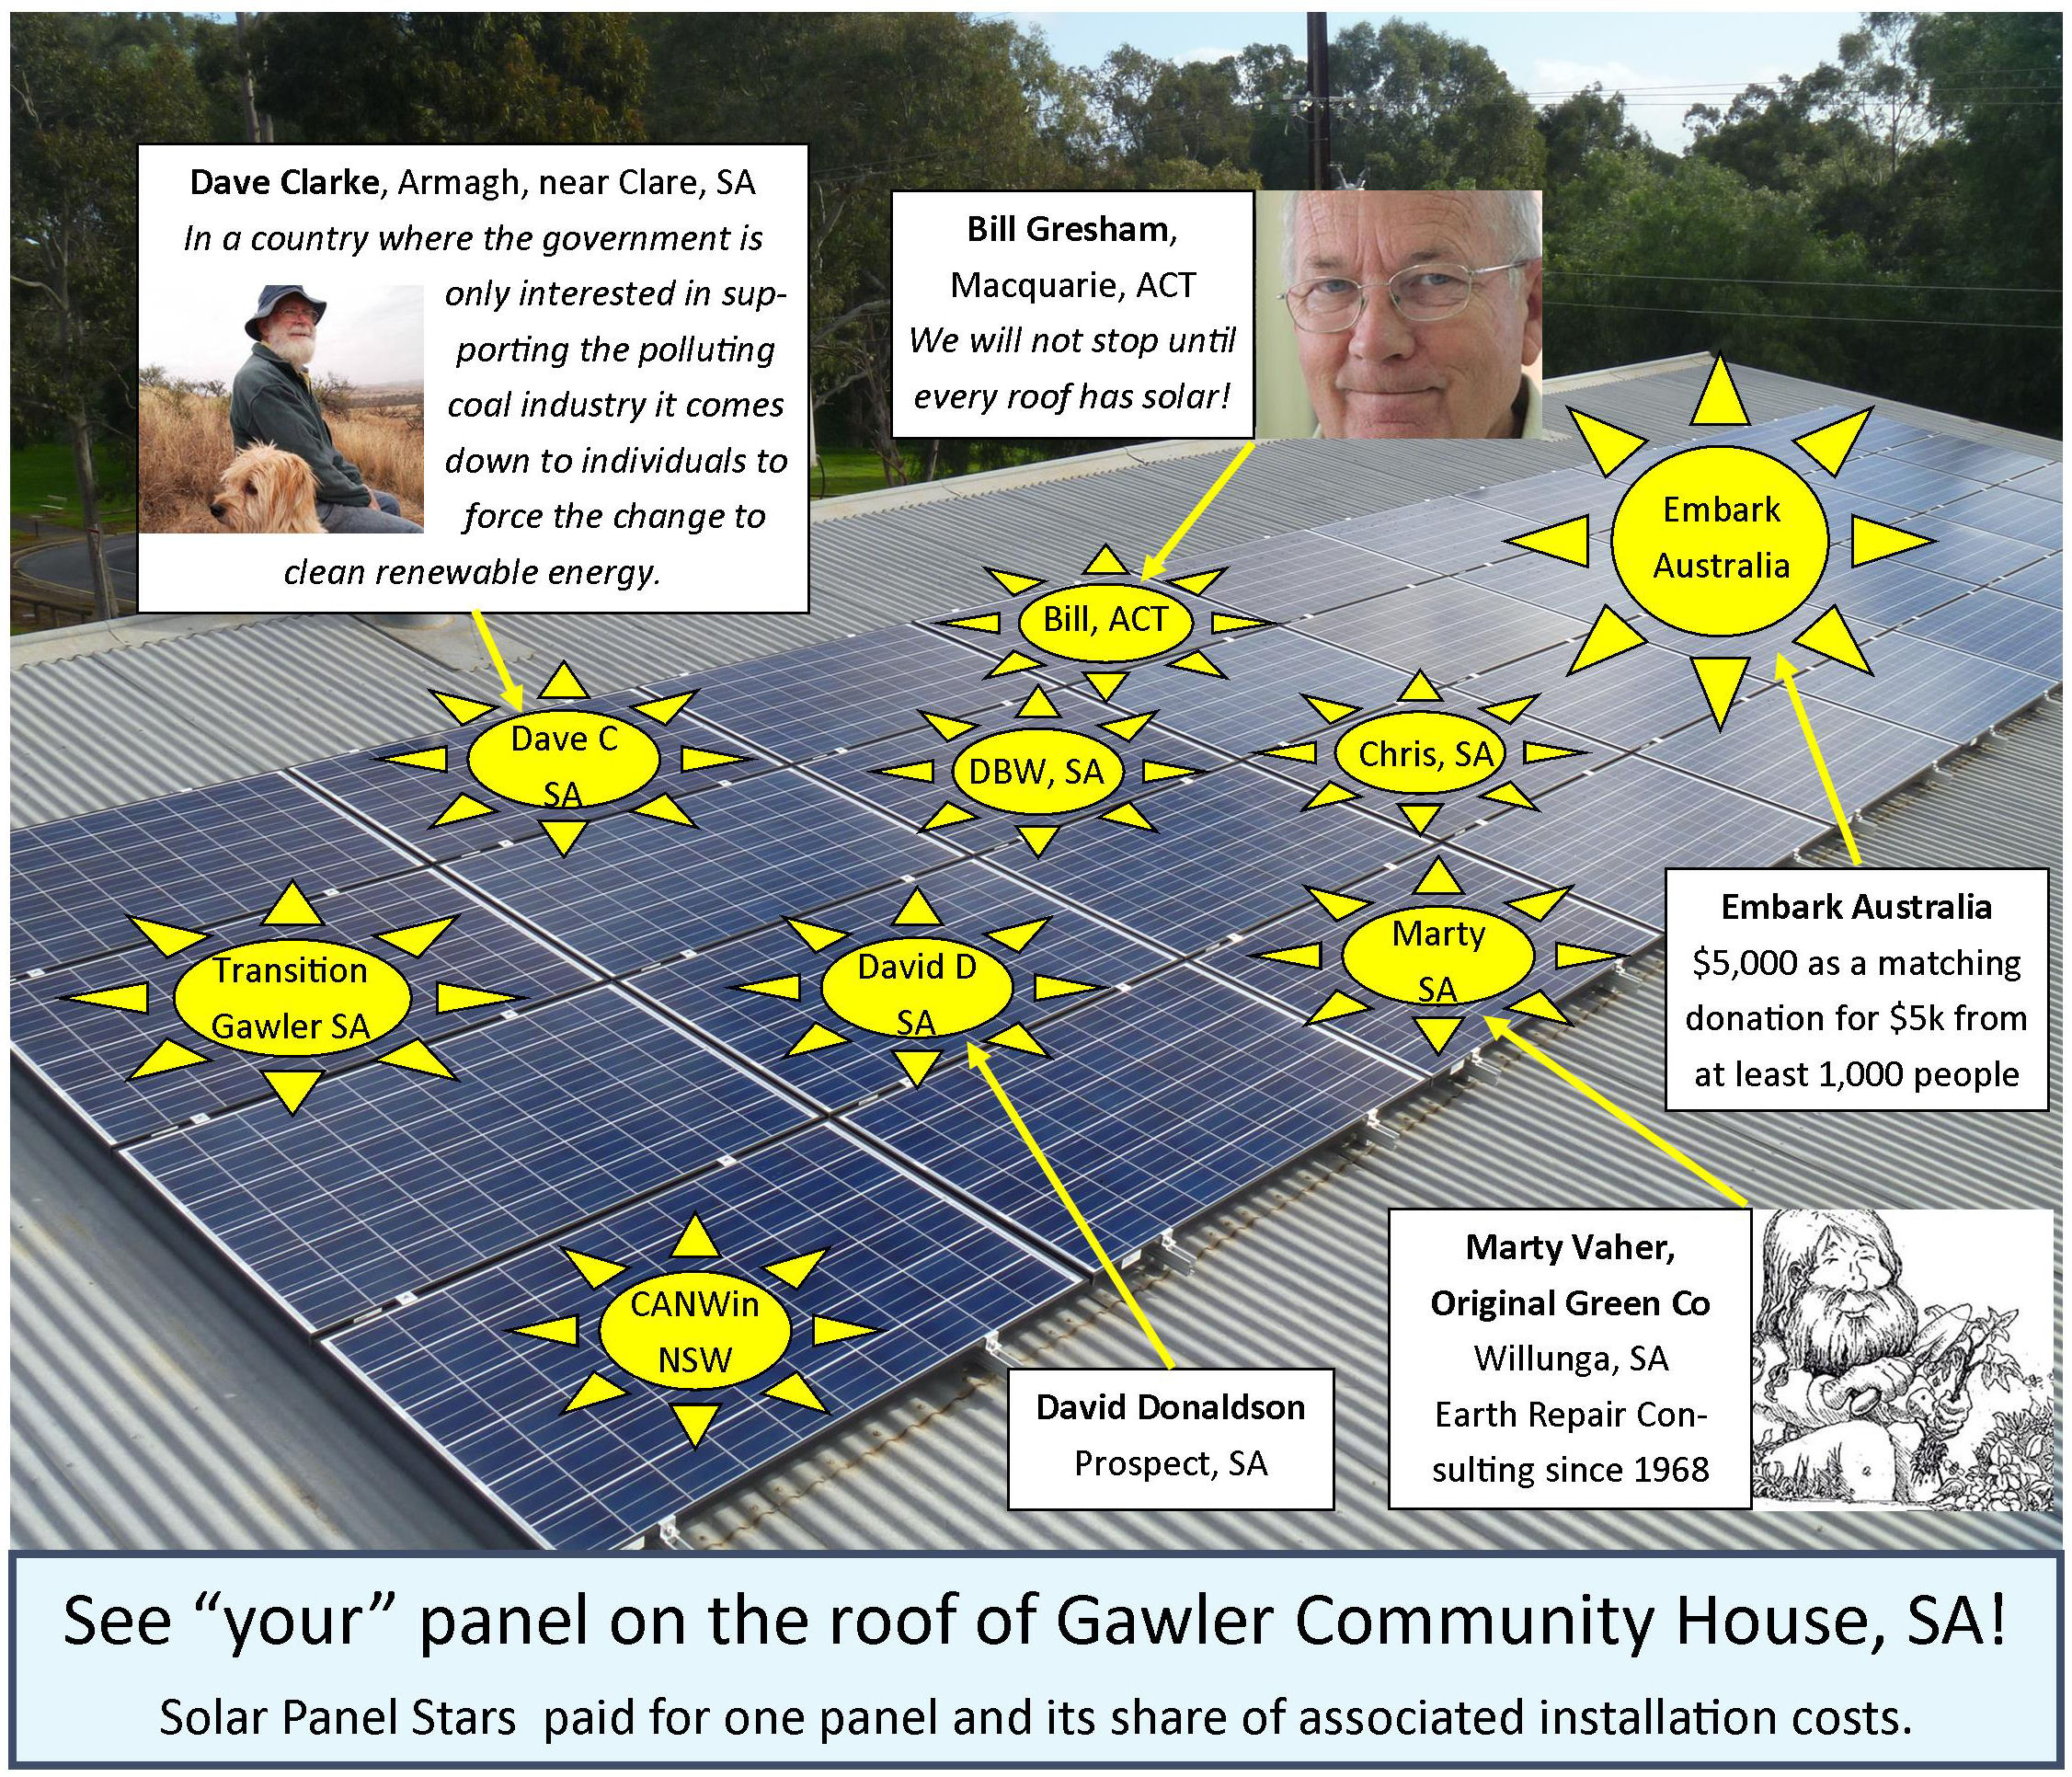 Solar Panel Stars - Gawler Community House